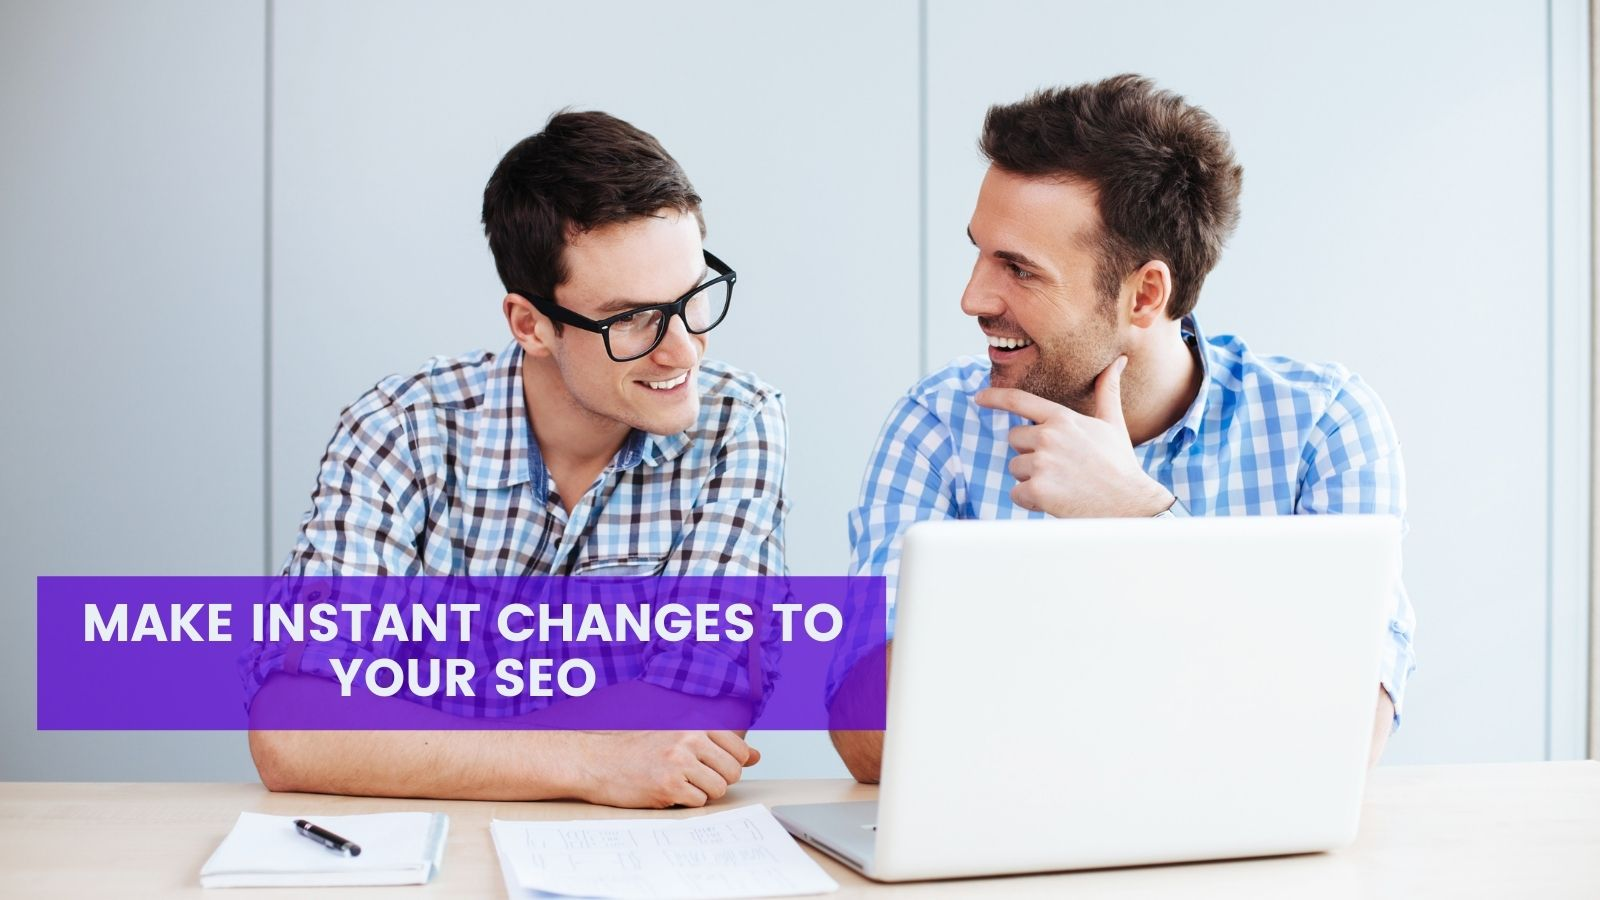 Make instant changes to your SEO with Agility CMS